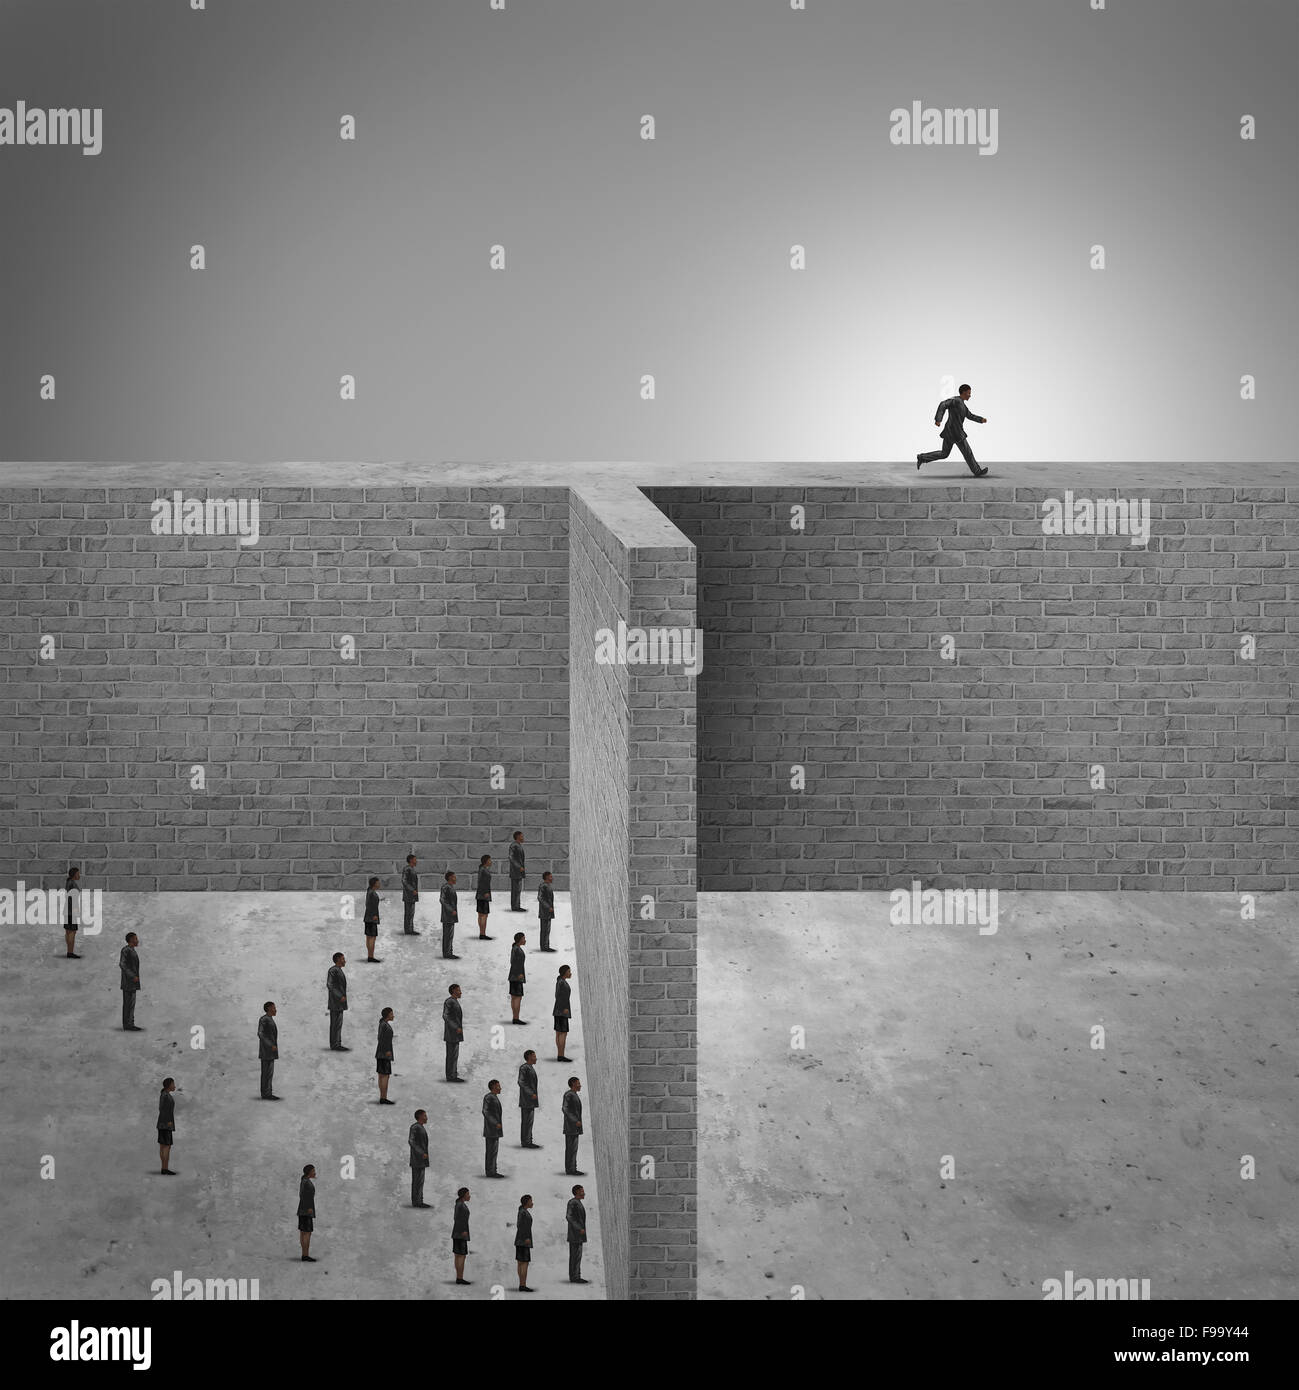 Think outside the box business success concept as a group of people trapped by high brick walls and a clever businessman - Stock Image